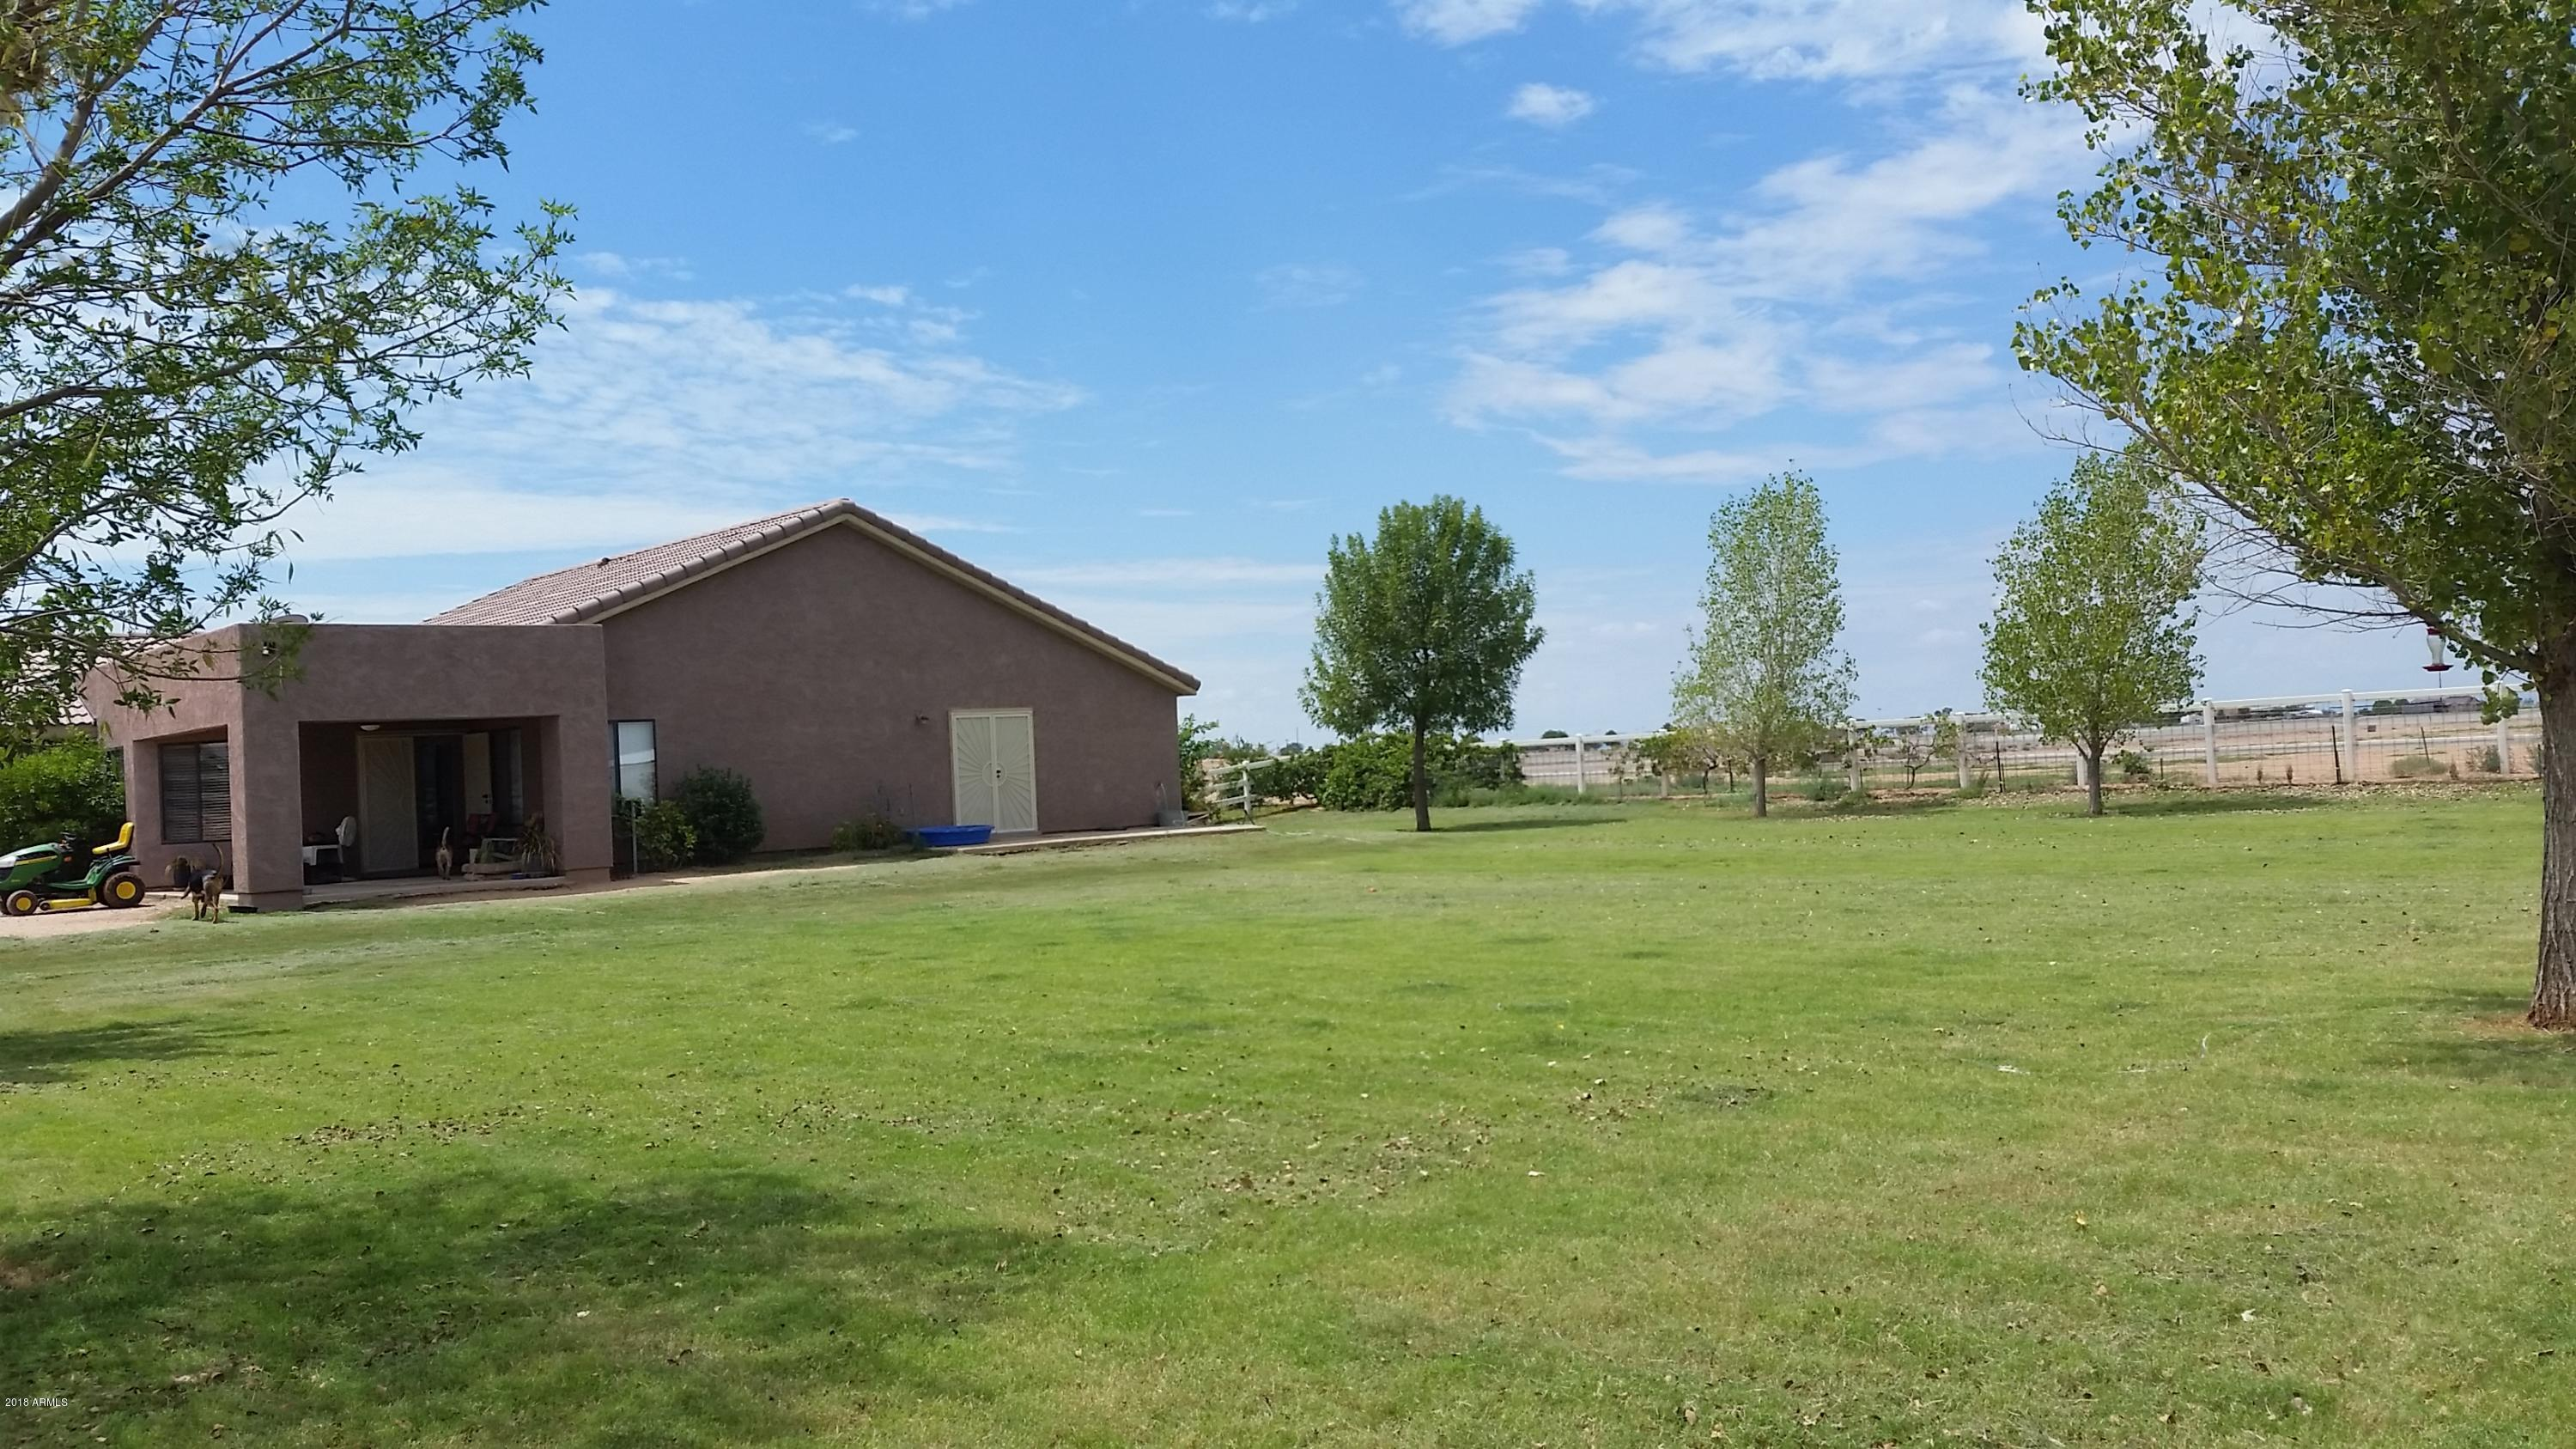 MLS 5736728 2880 E NORTHERN Avenue, Coolidge, AZ 85128 Coolidge AZ Three Bedroom